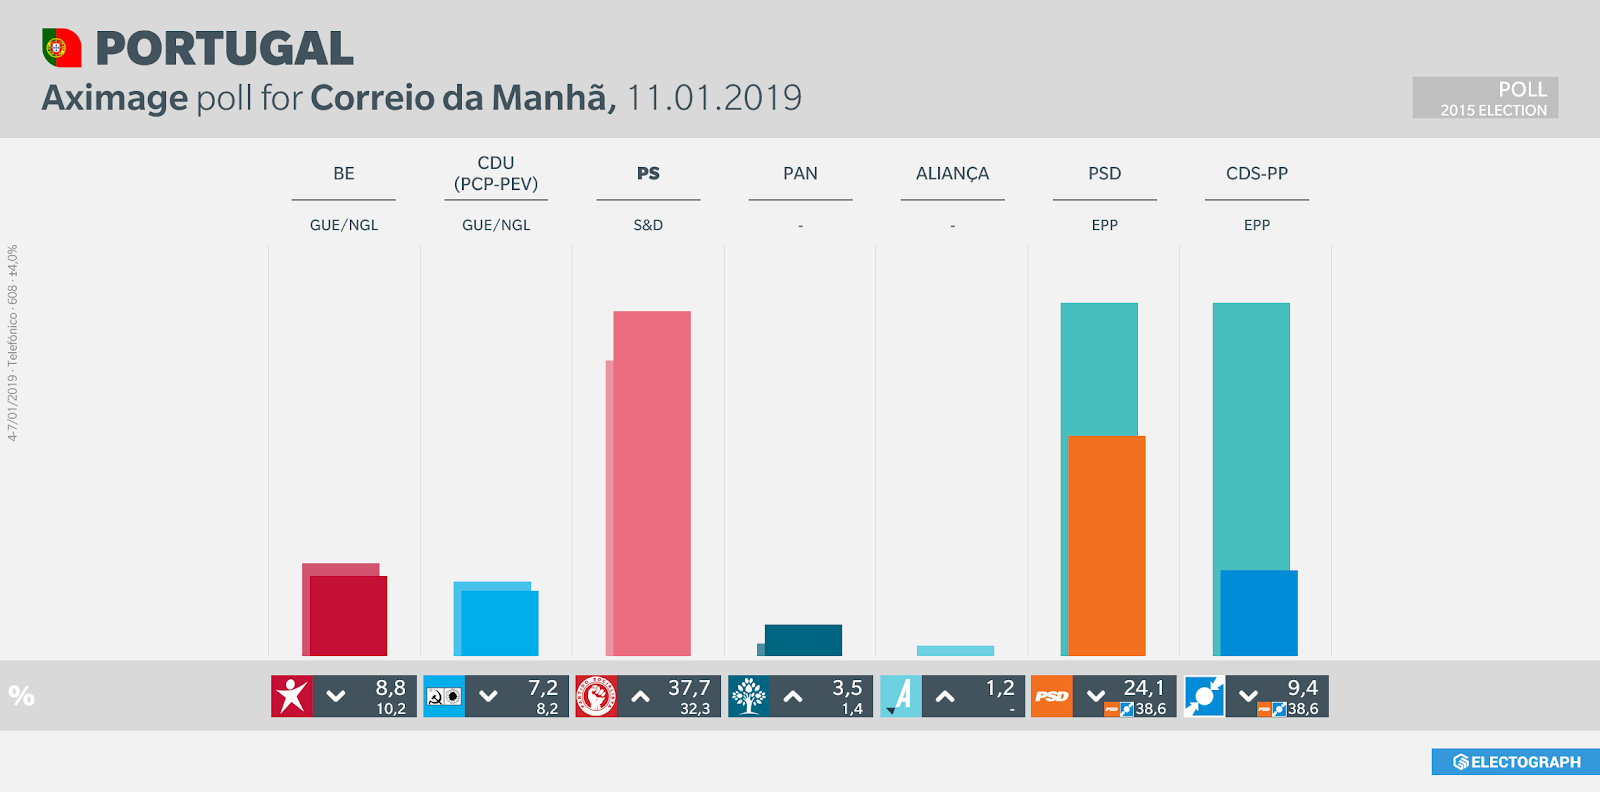 PORTUGAL: Aximage poll for Correio da Manhã, 11 January 2019